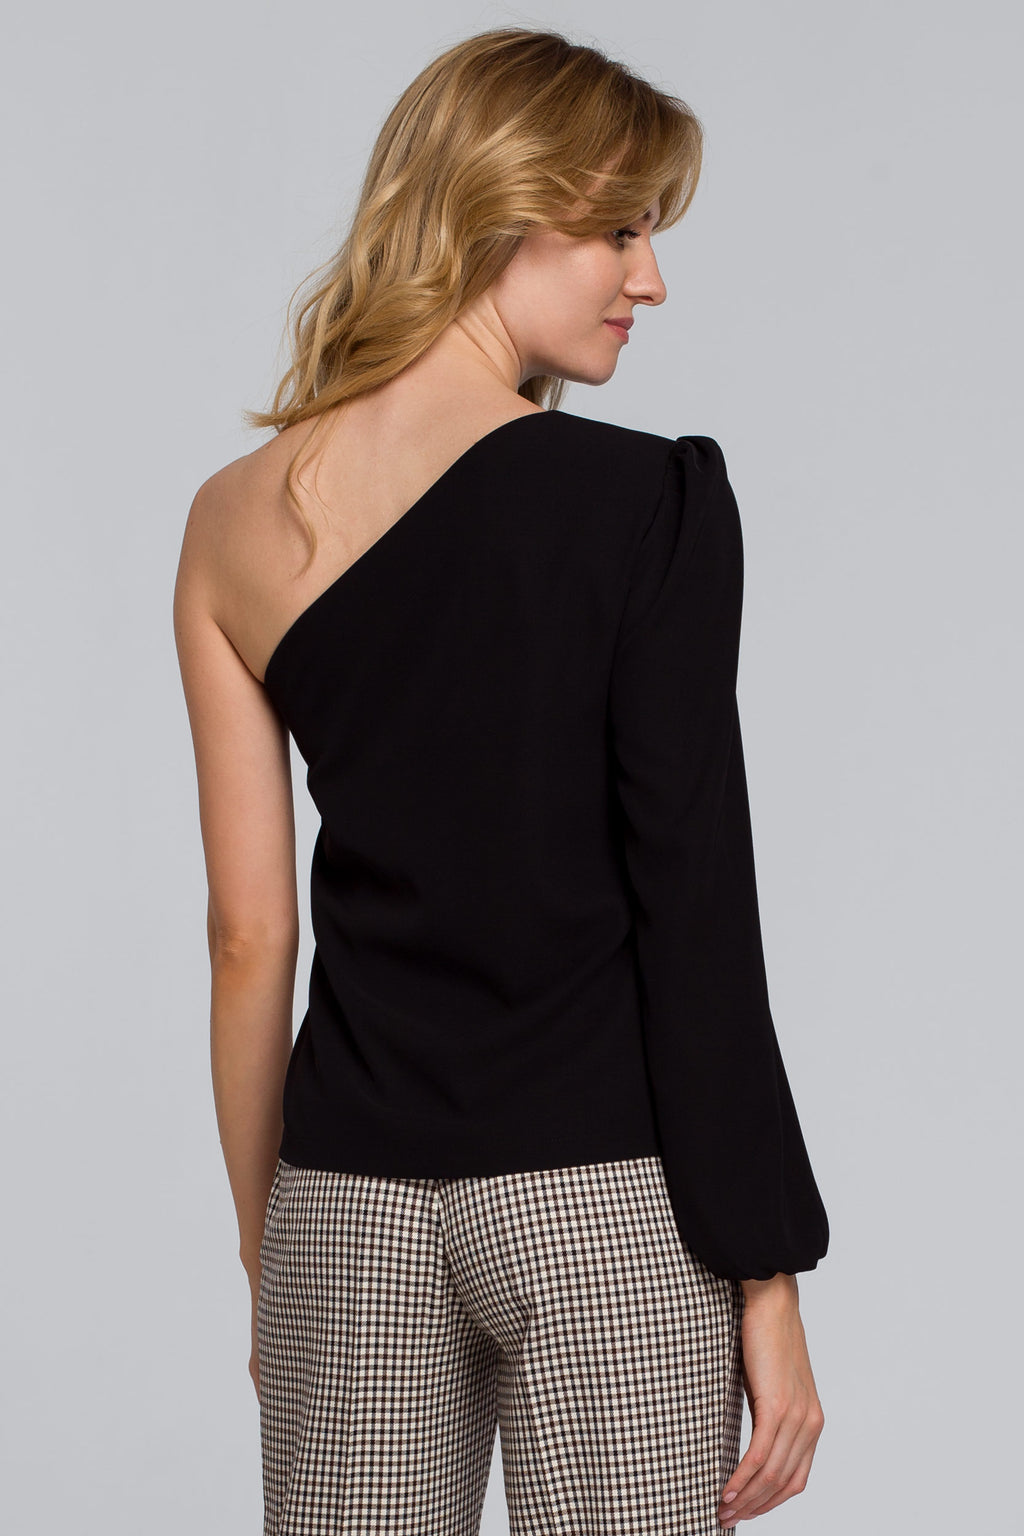 One Shoulder Black Blouse - So Chic Boutique